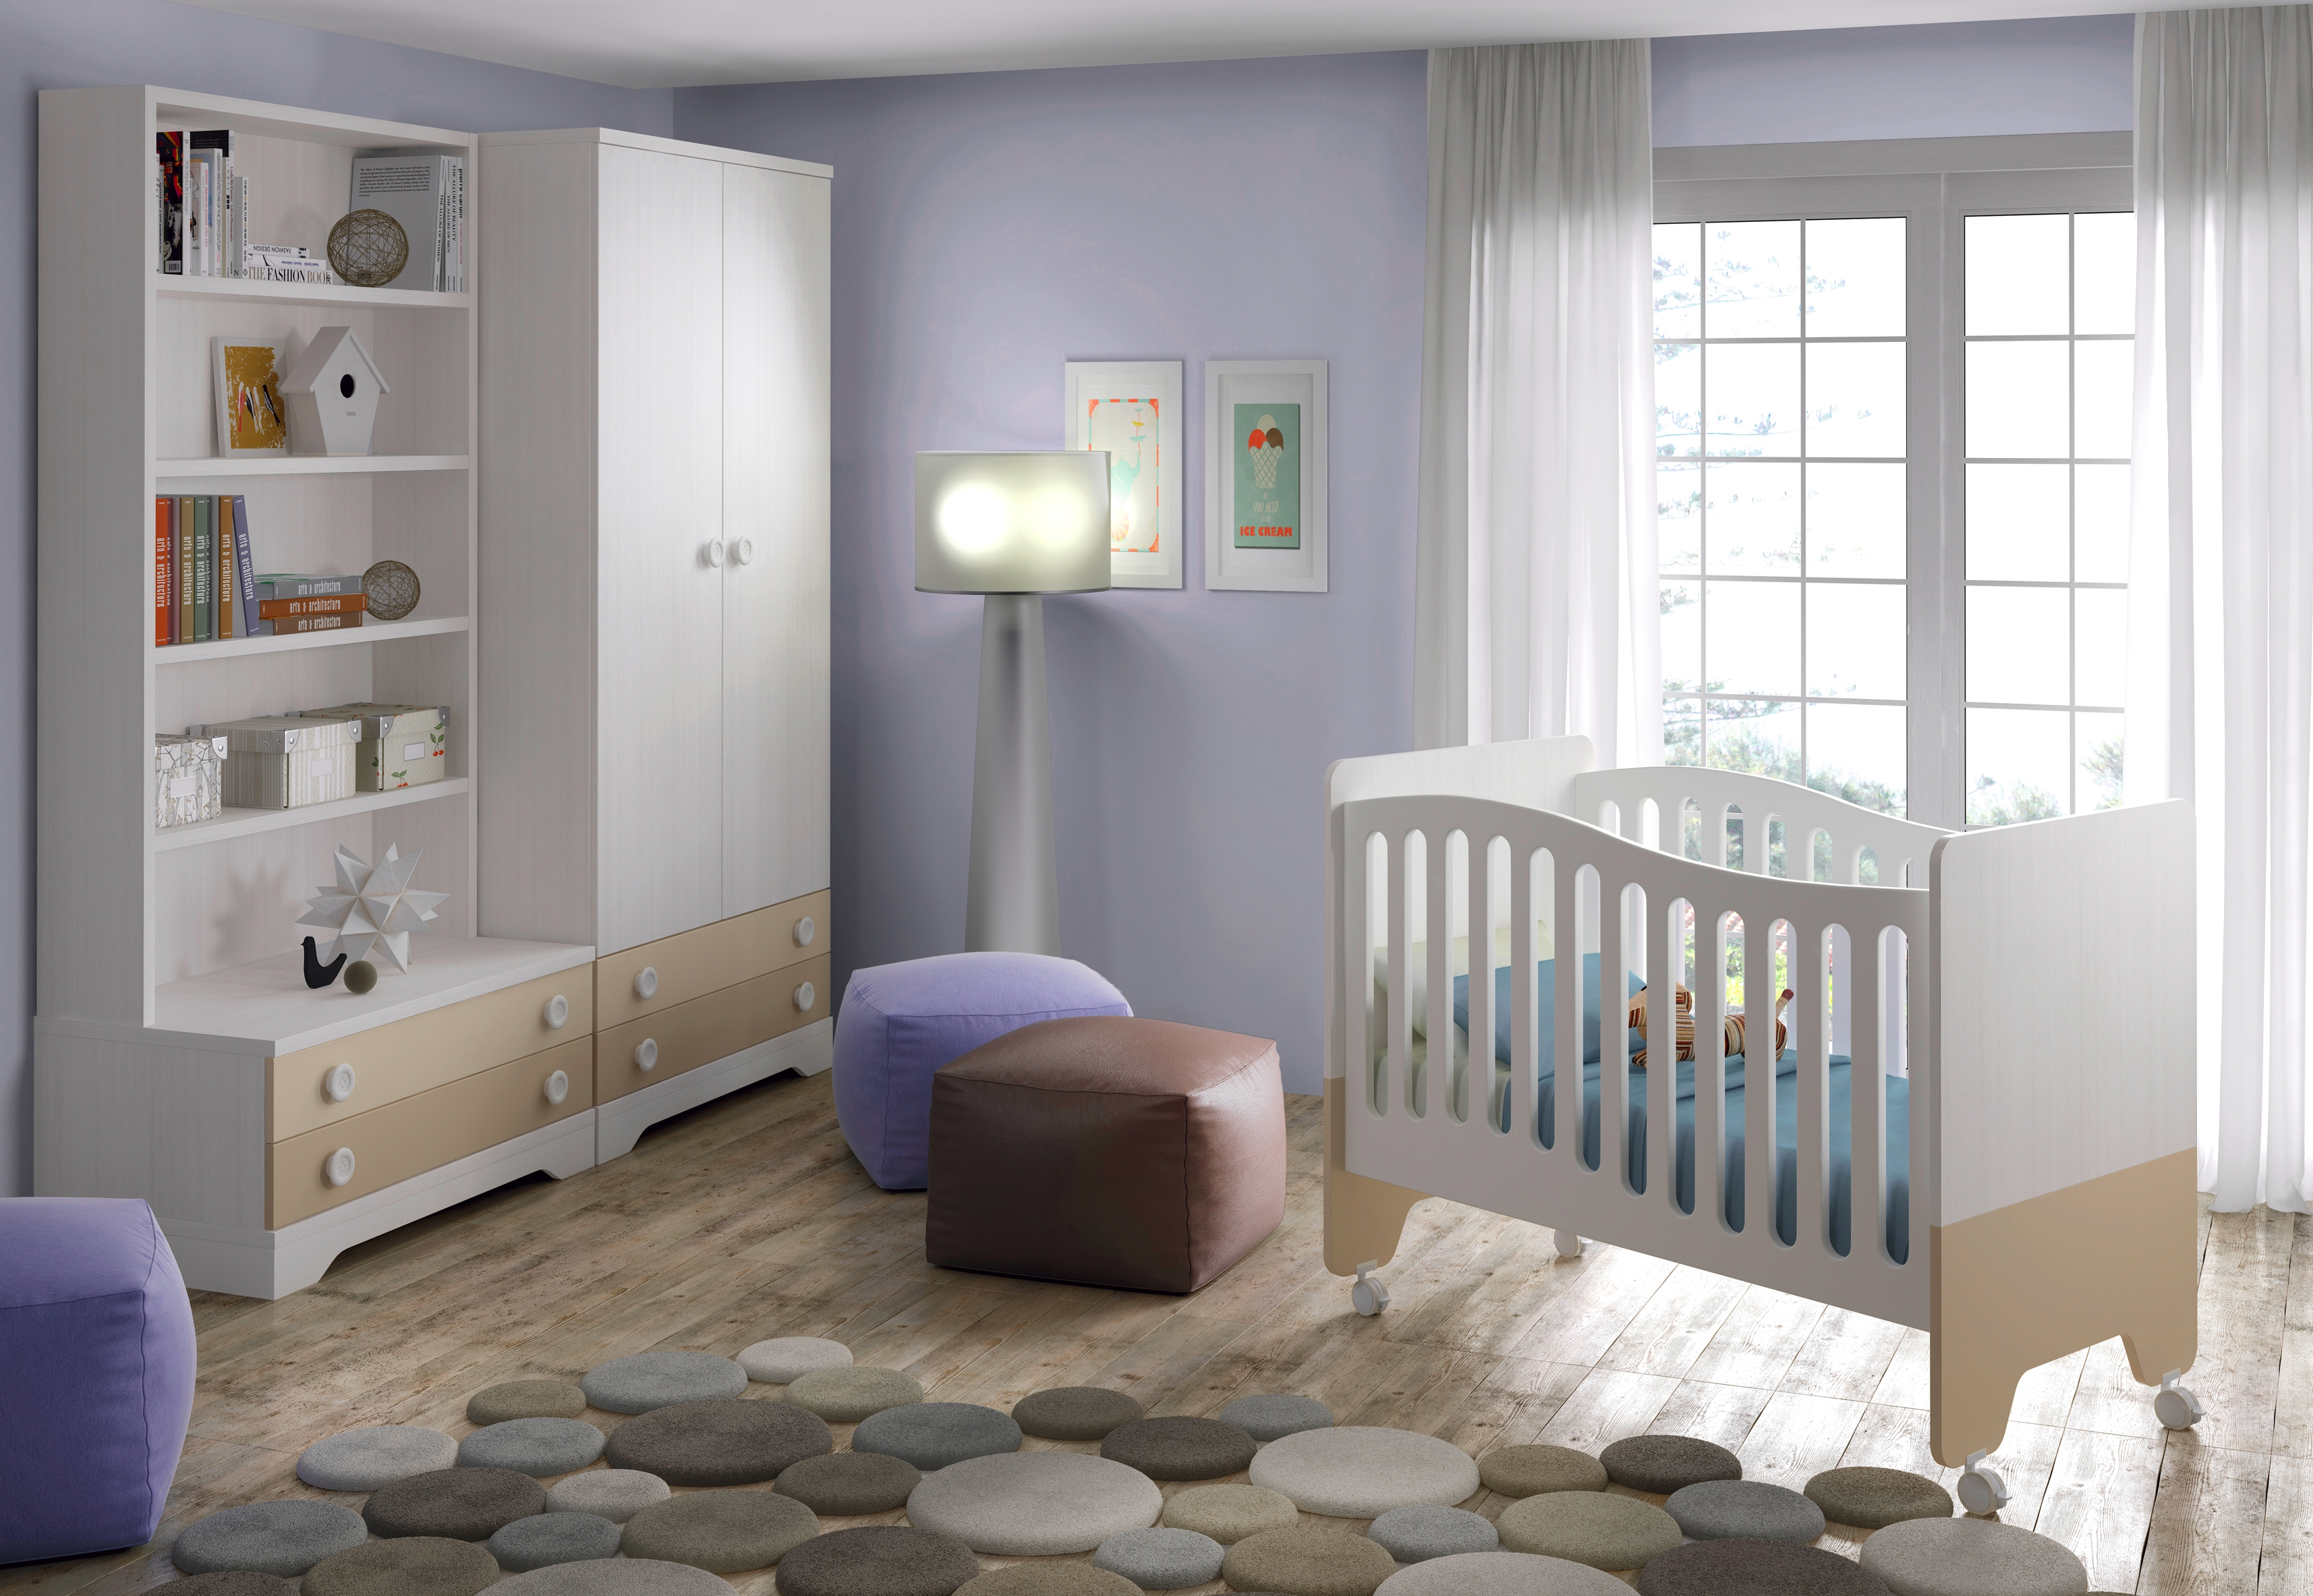 Design chambre de b b for Photo de chambre bebe